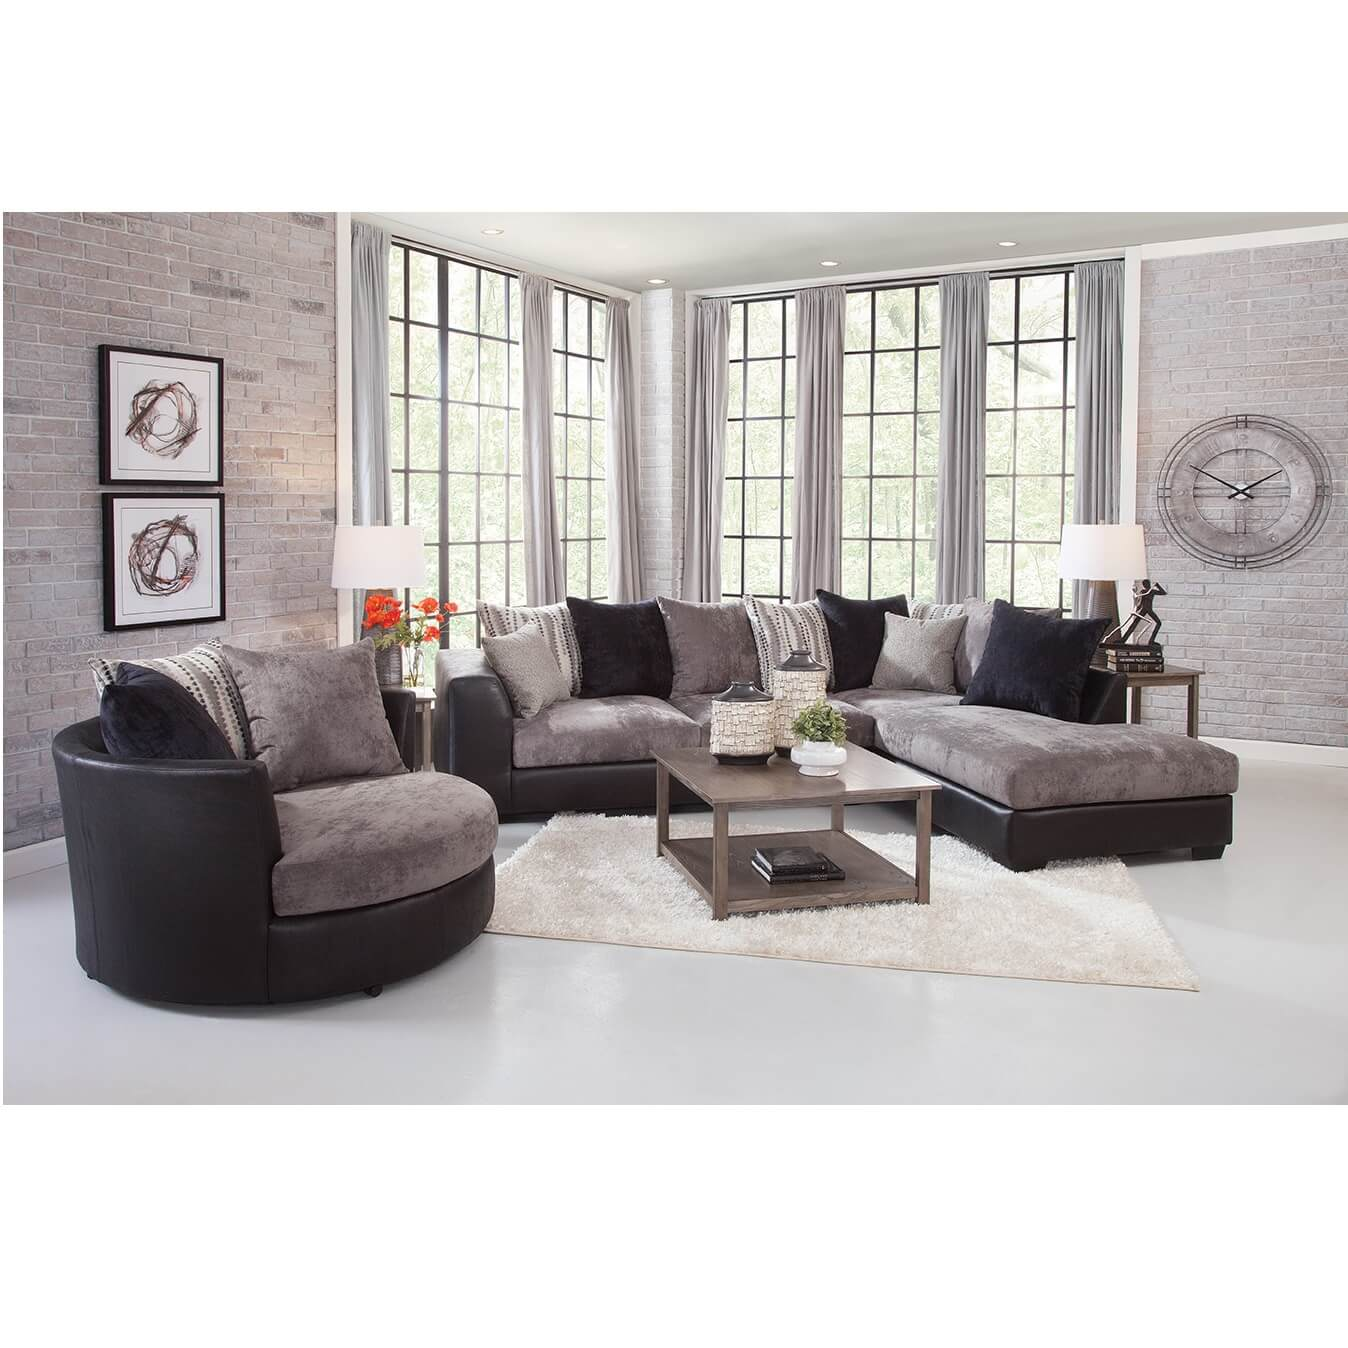 8-Piece Jamal Chaise Sofa Sectional Living Room Collection with Barrel Chair